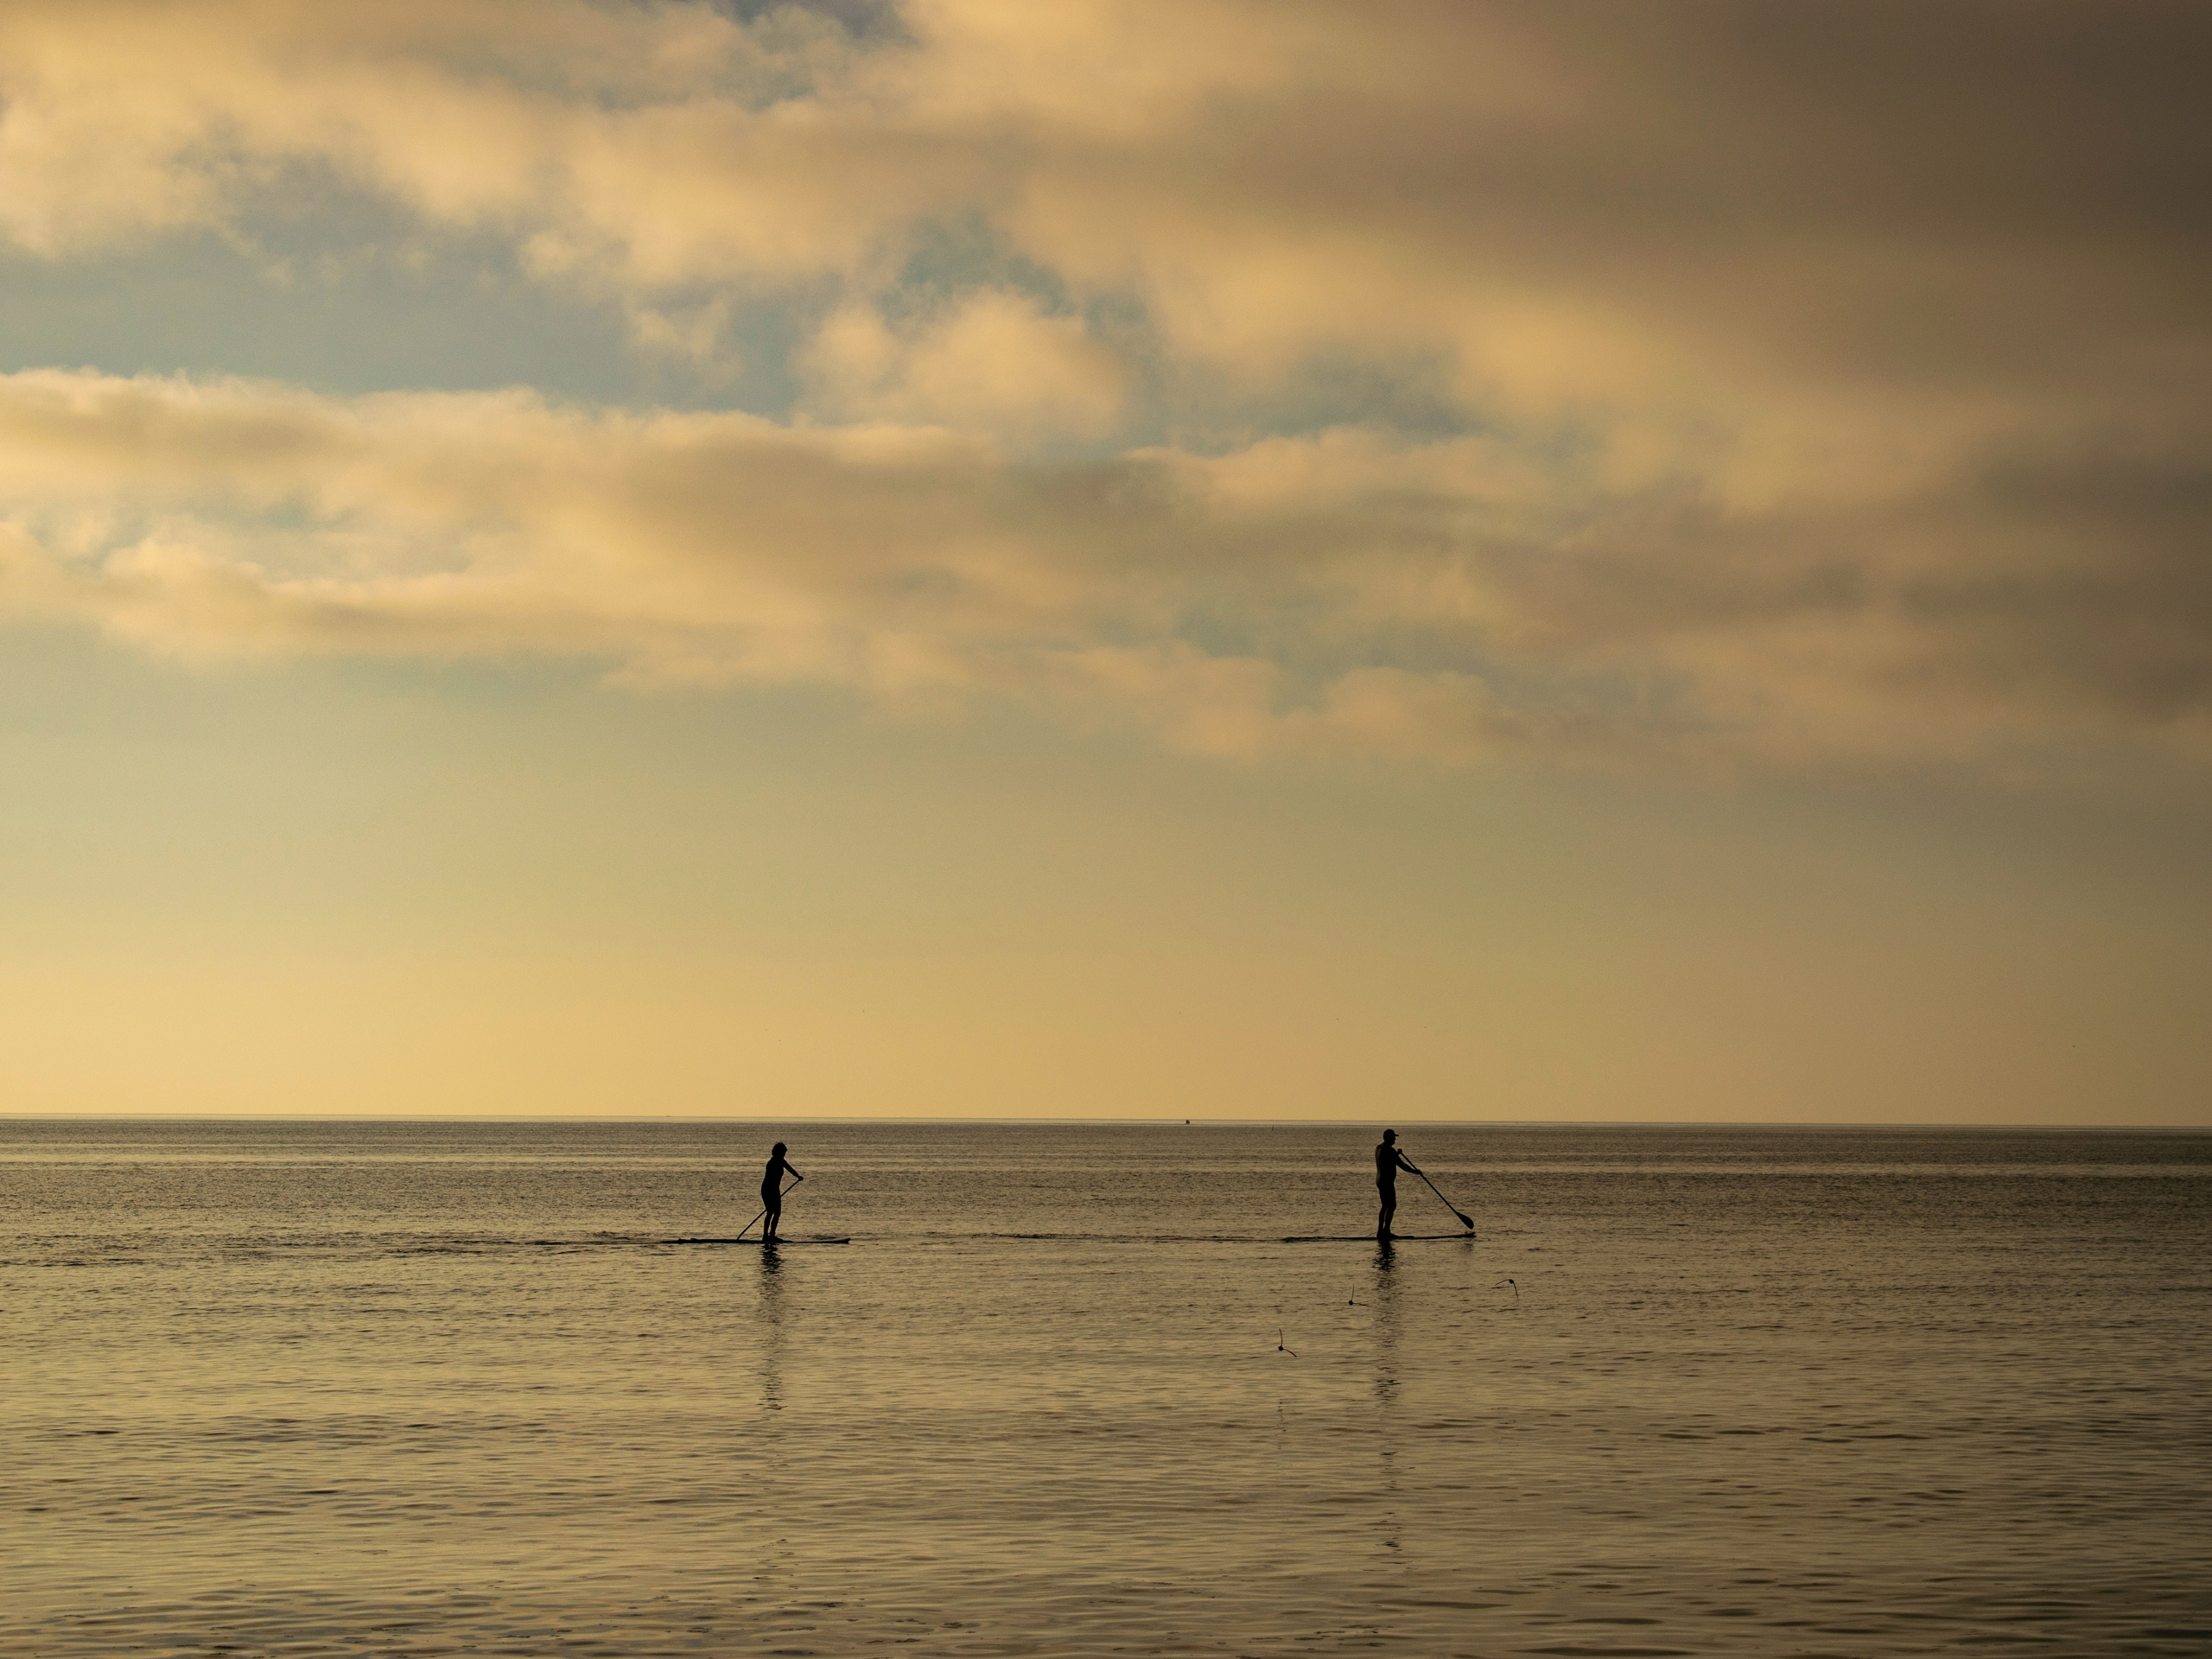 Paddleboards on the sea in Tofino